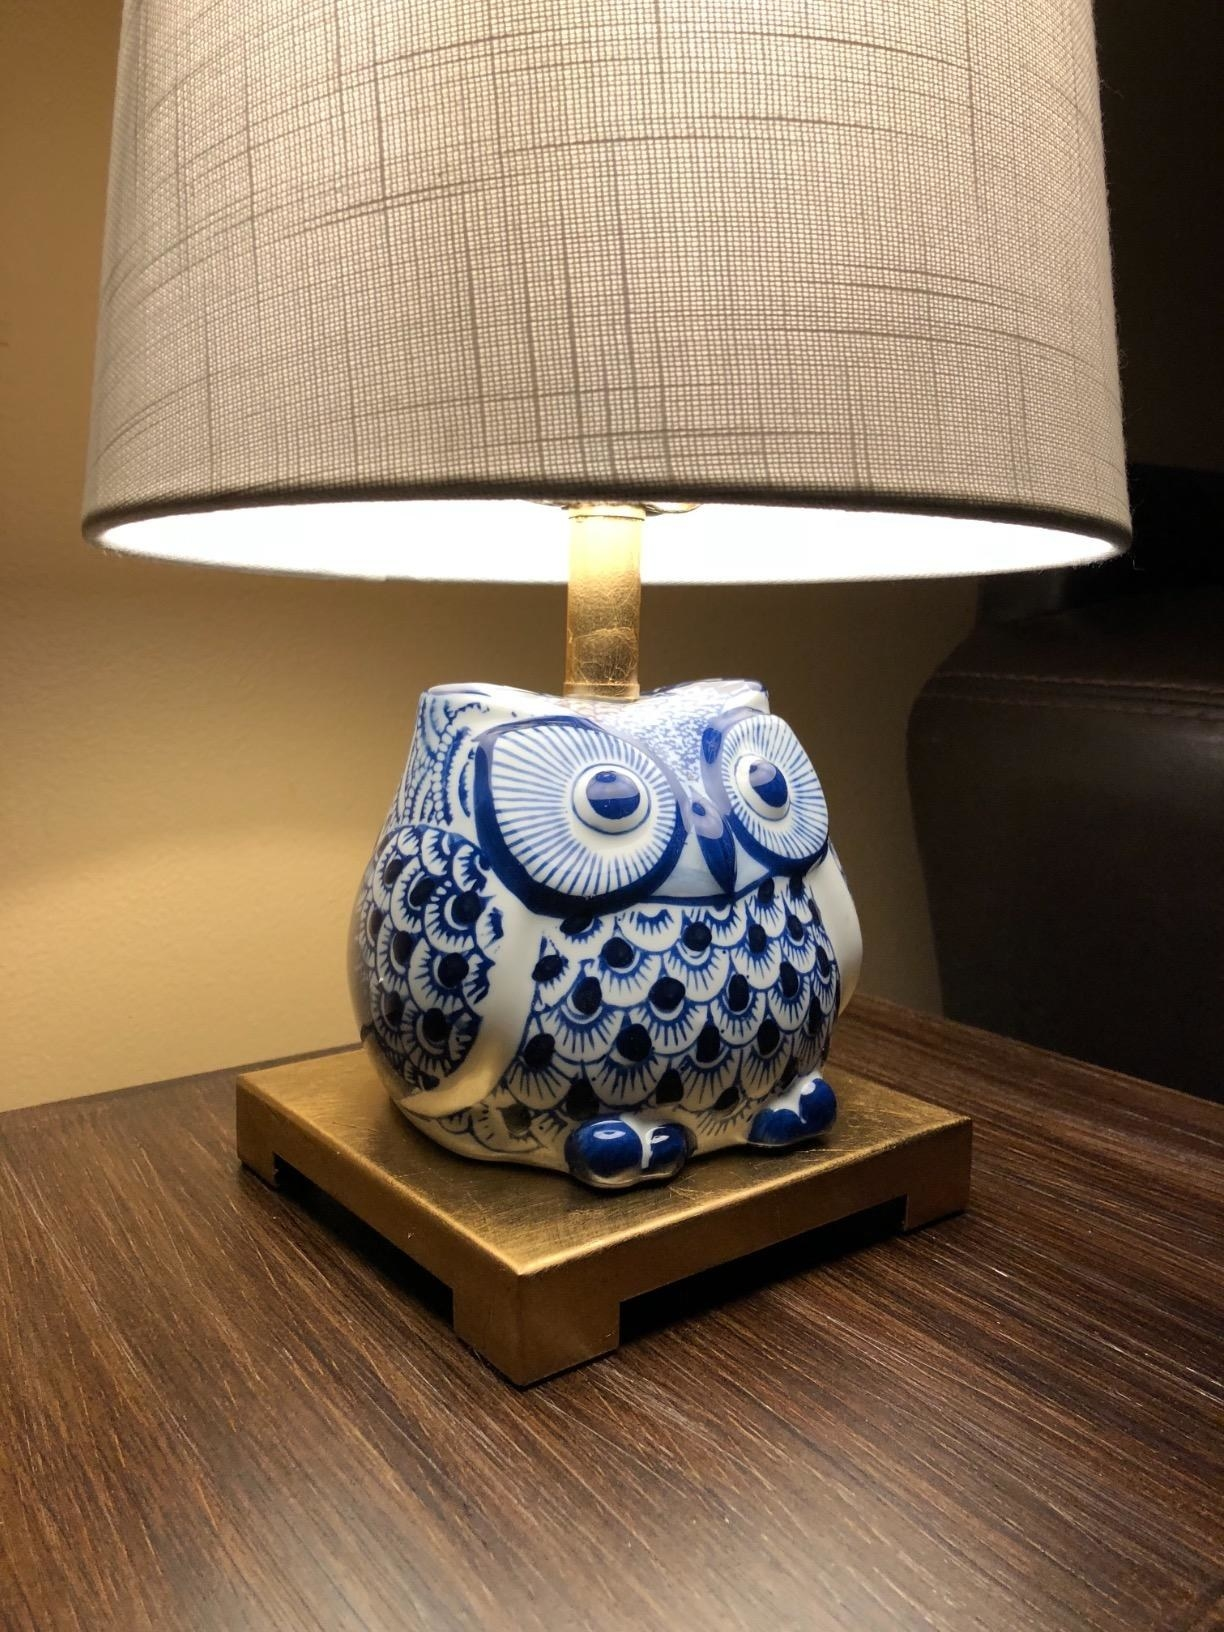 Reviewer's close up of the owl lamp